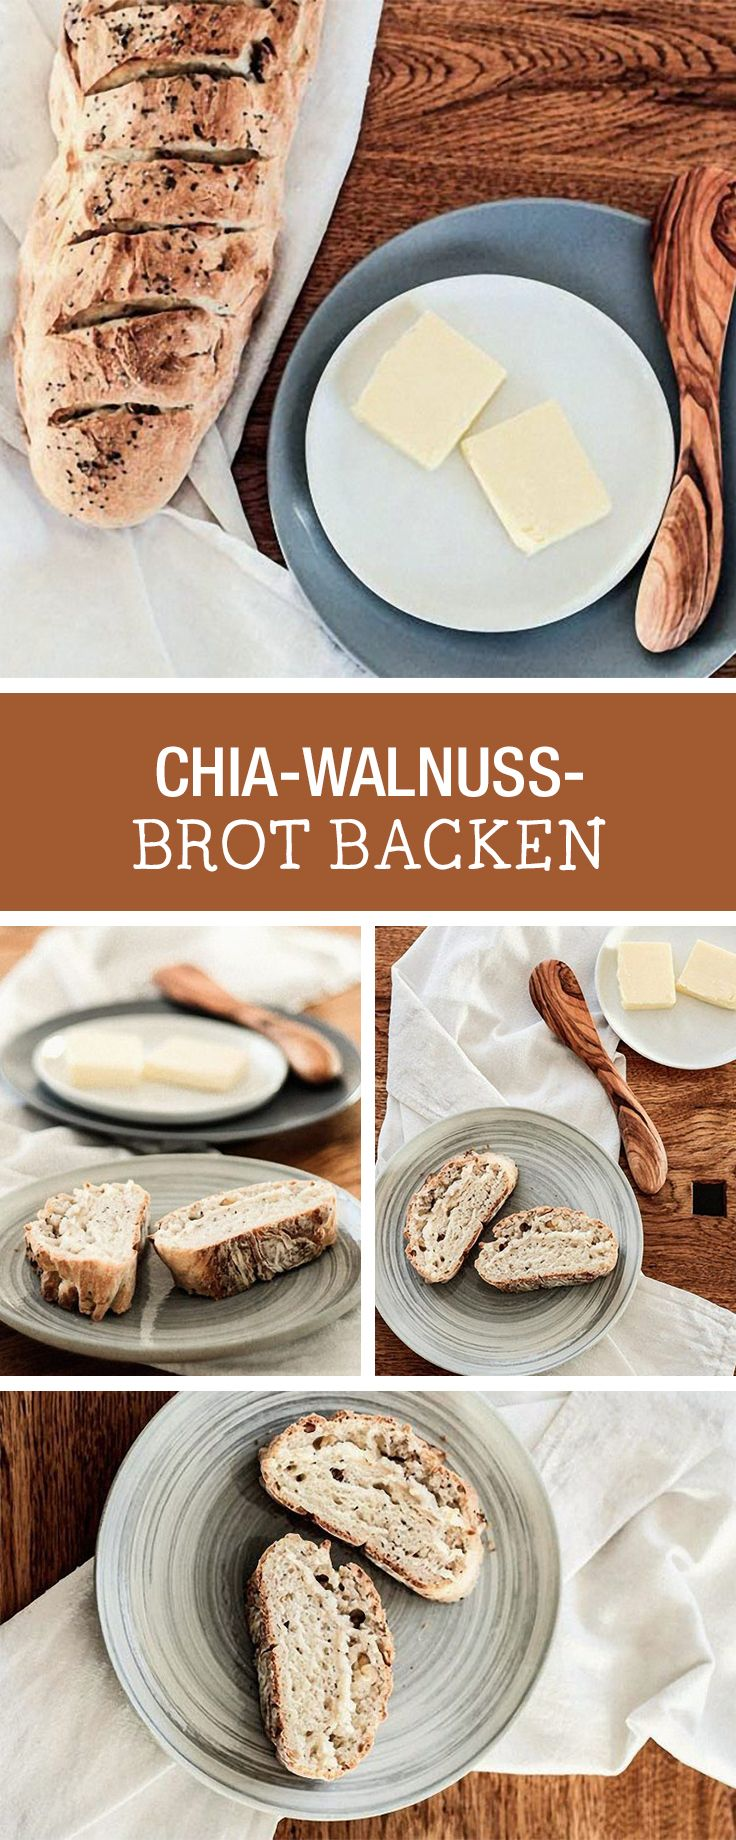 Gesundes Brot fürs Frühstück: Rezept für ein Chia-Walnuss-Brot / bake your own bread: recipe for ciabatta with walnuts and chia seeds via DaWanda.com